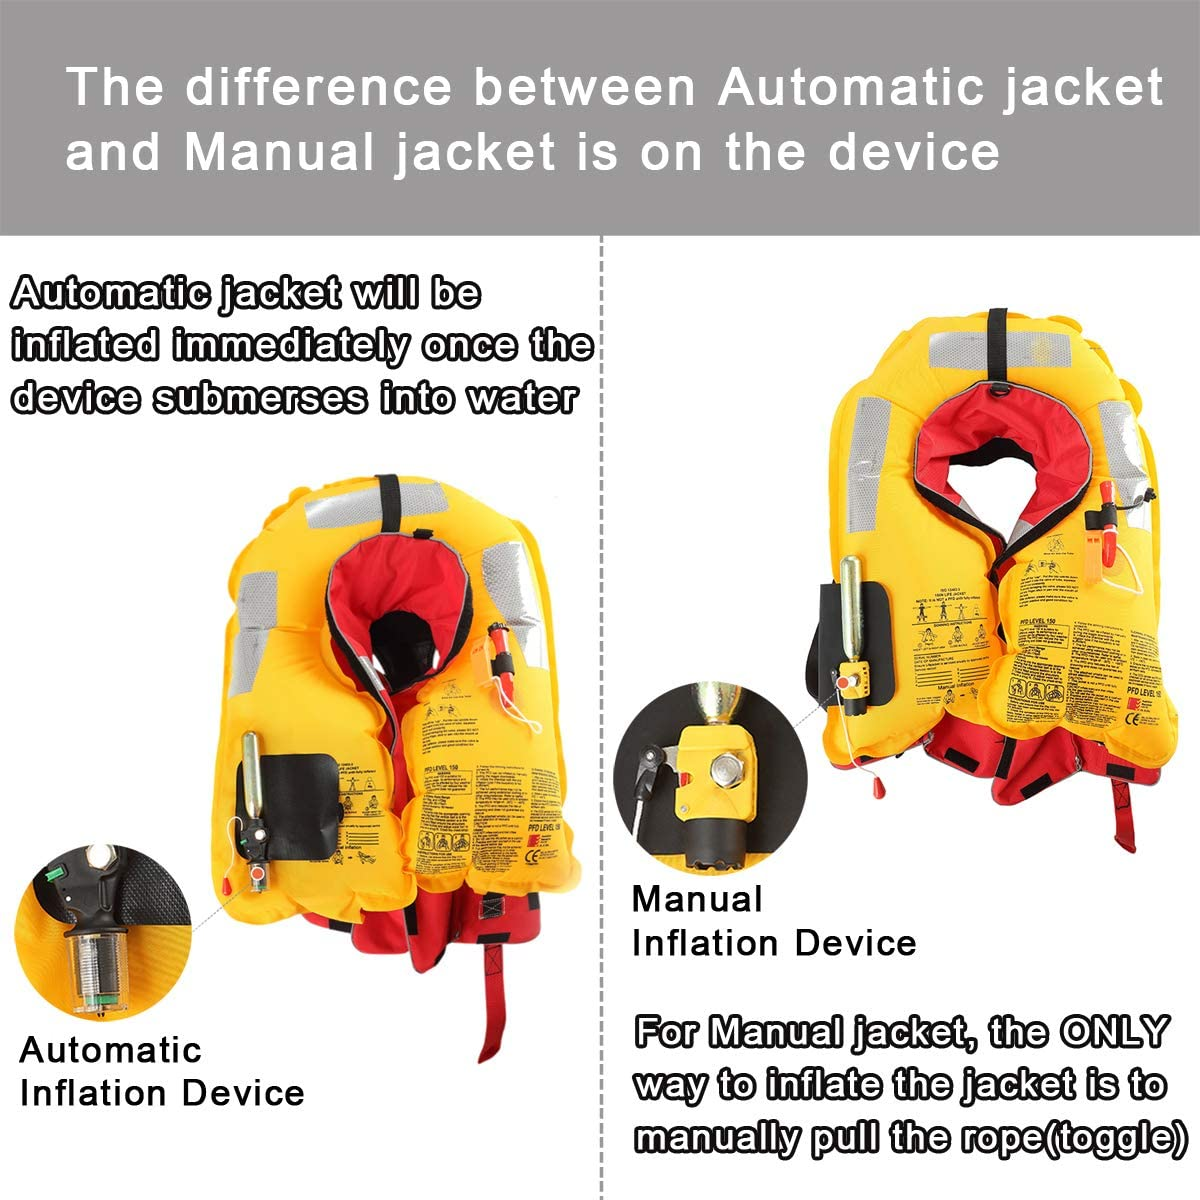 CE Approved Lightweight Premium Quality Night Cat Life Jackets for Adults Kayaking Boating Vests Inflatable Lifesaving PFD Automatic and Manual 330LB 150KG Survival Preservers